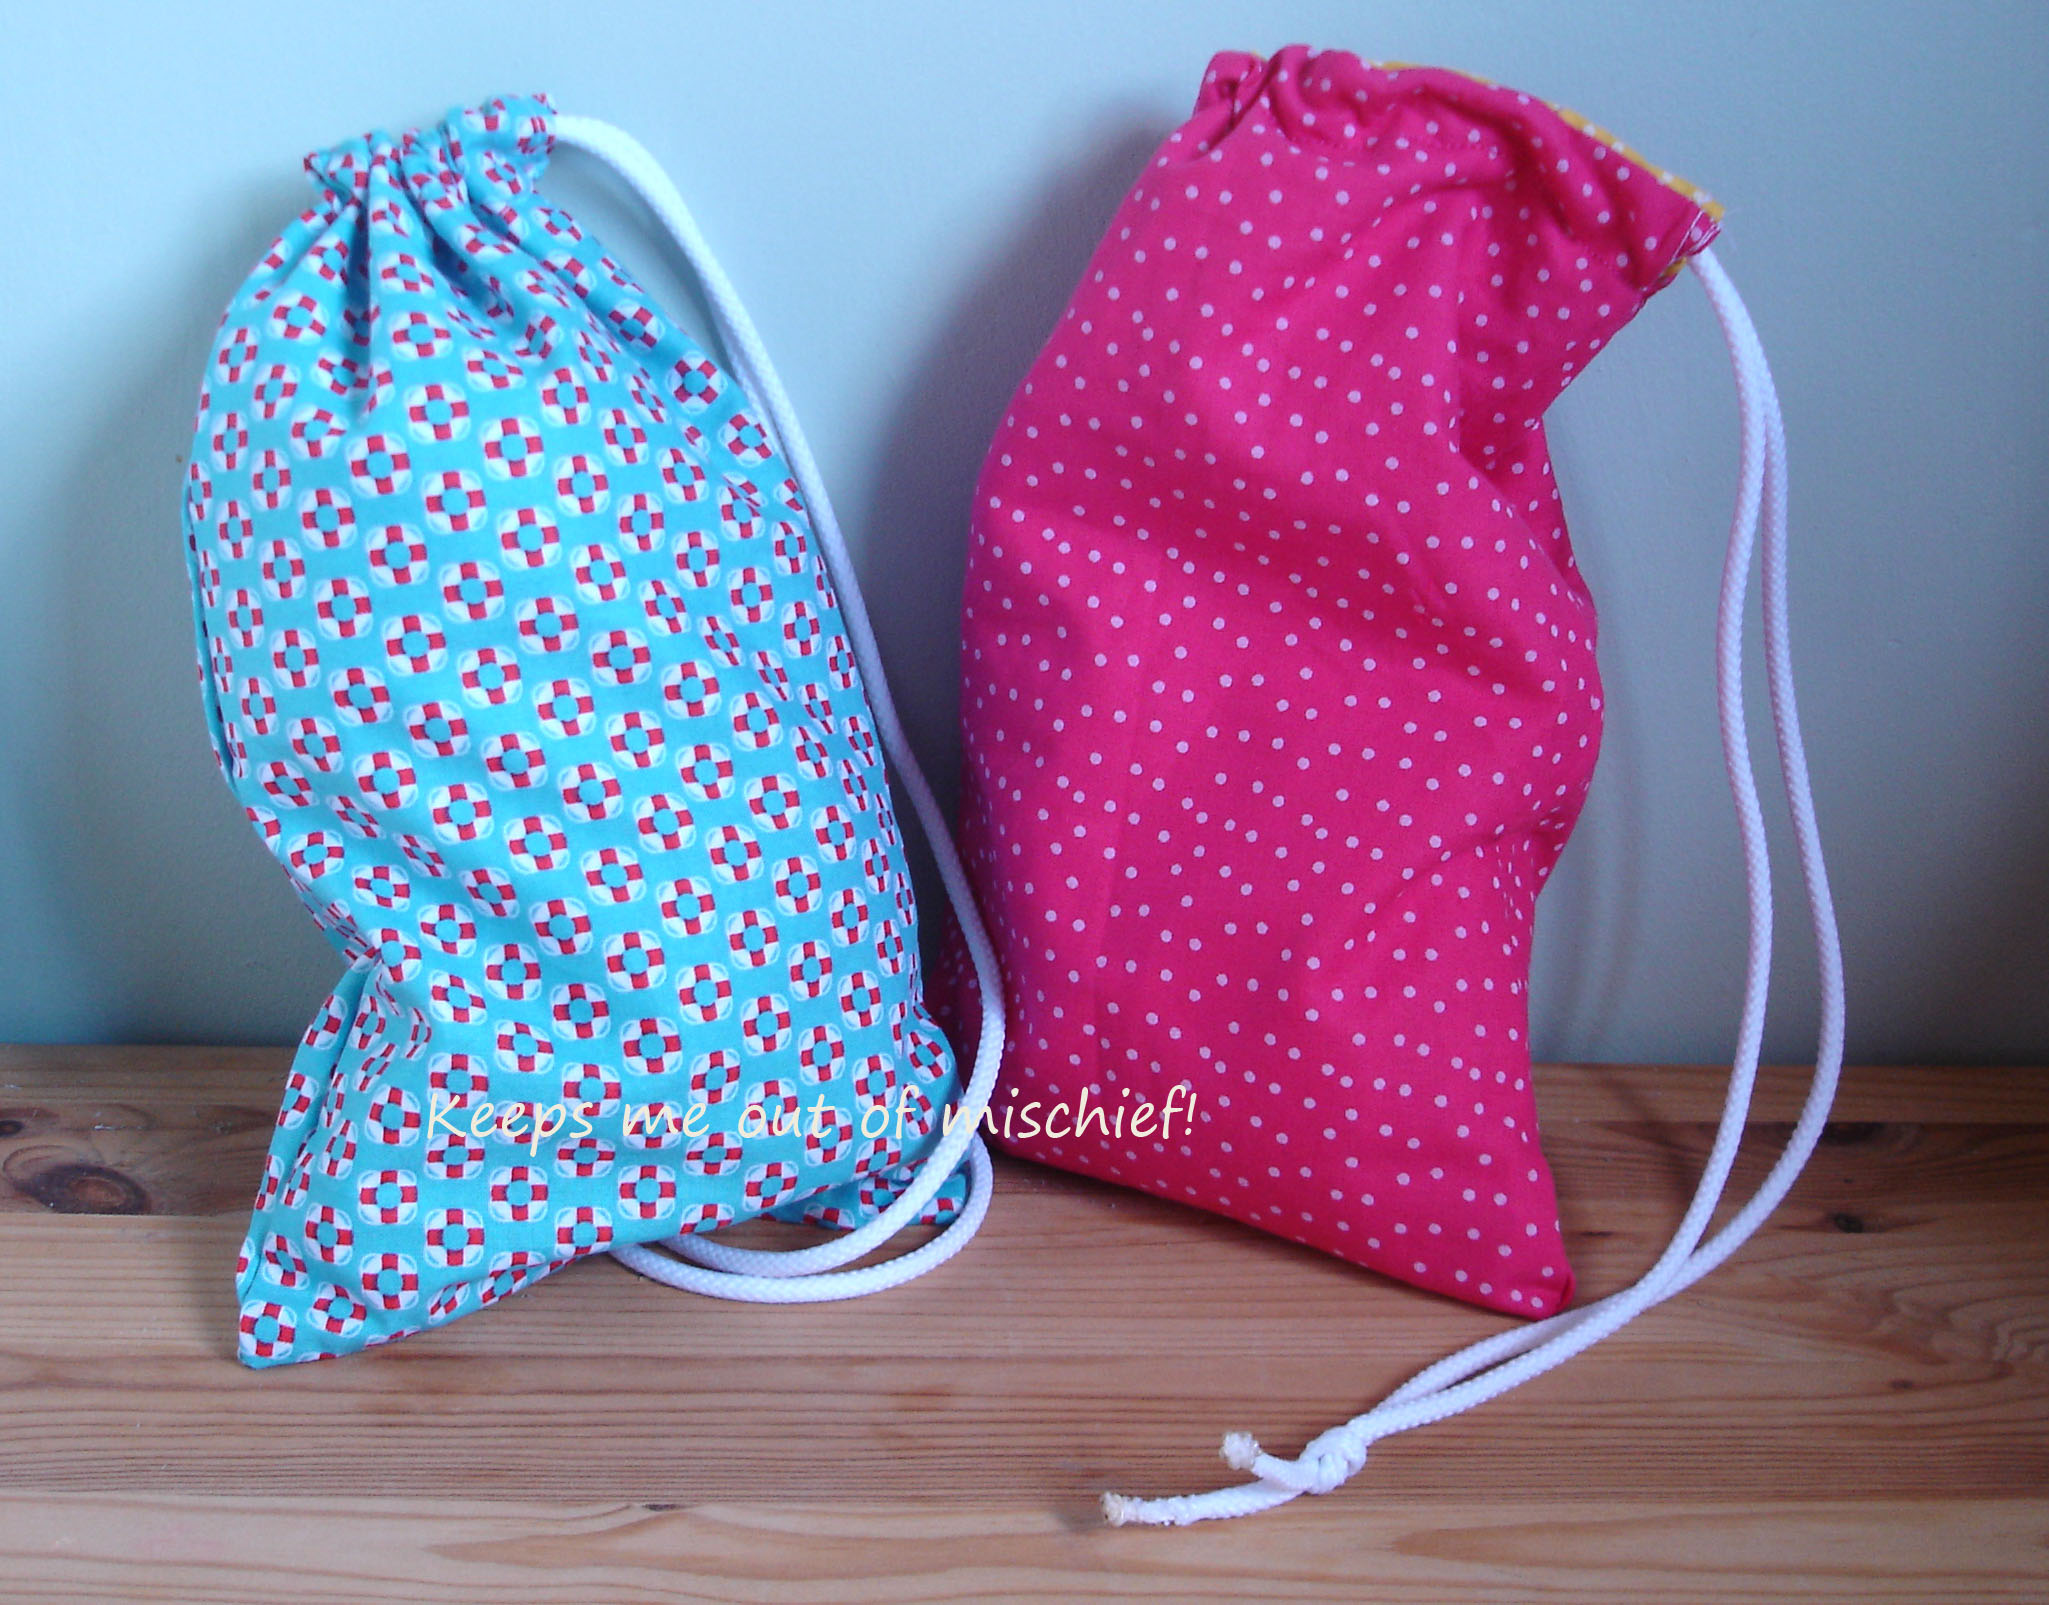 Project Three: Drawstring Bags | Keeps Me Out Of Mischief!